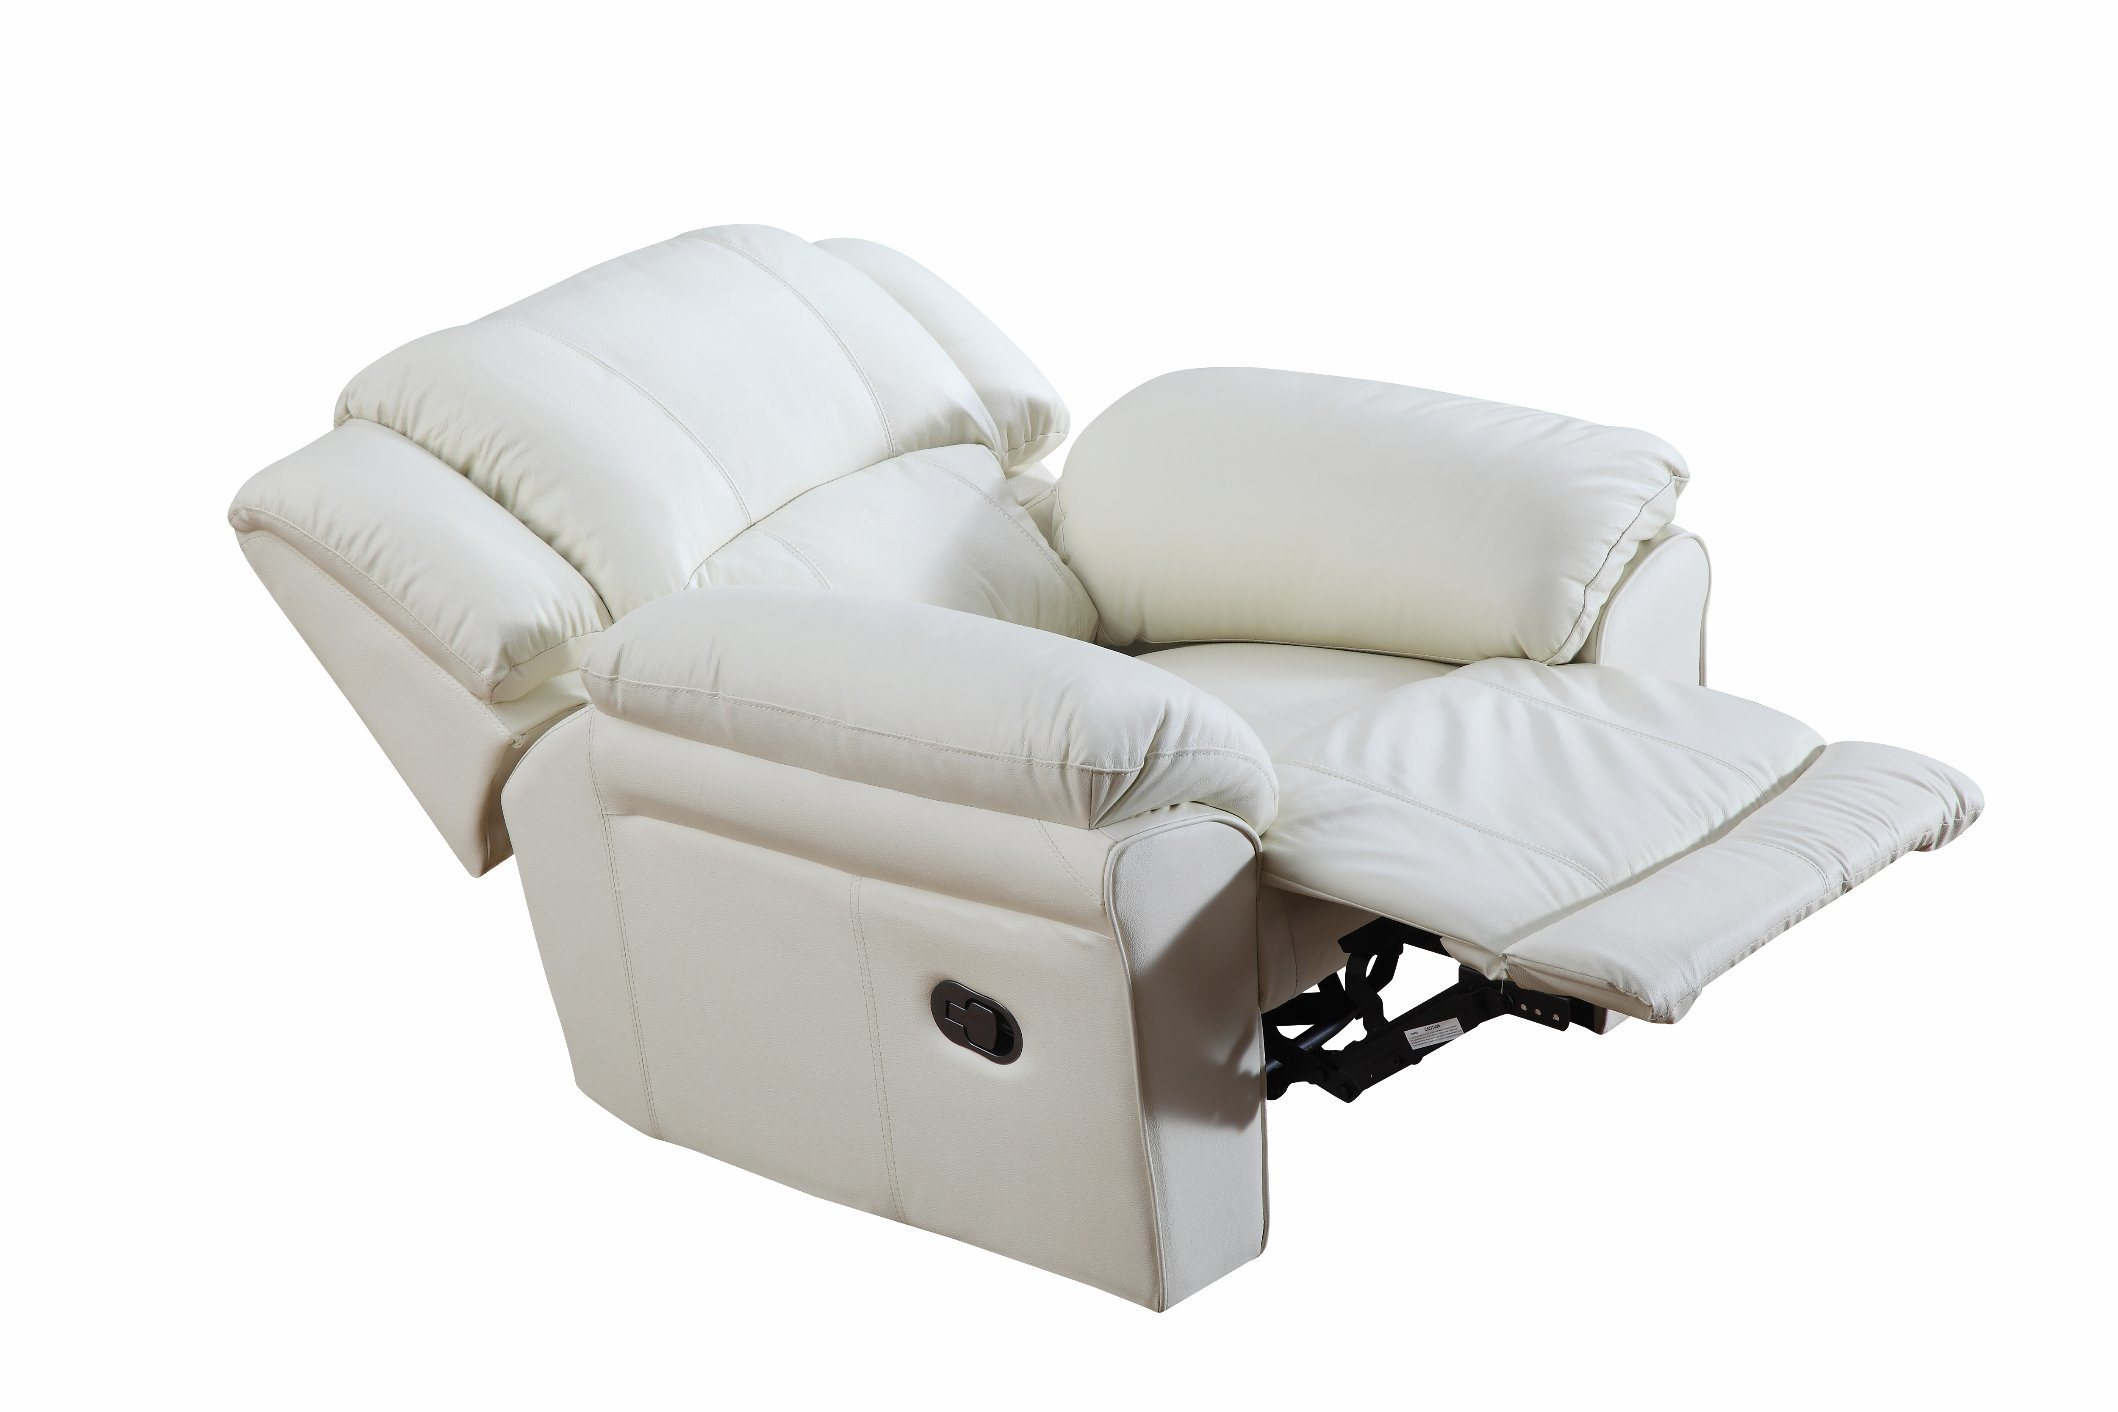 Home Cinema Leather Sofa for Movie Theatre Chair with Recliner Sofa